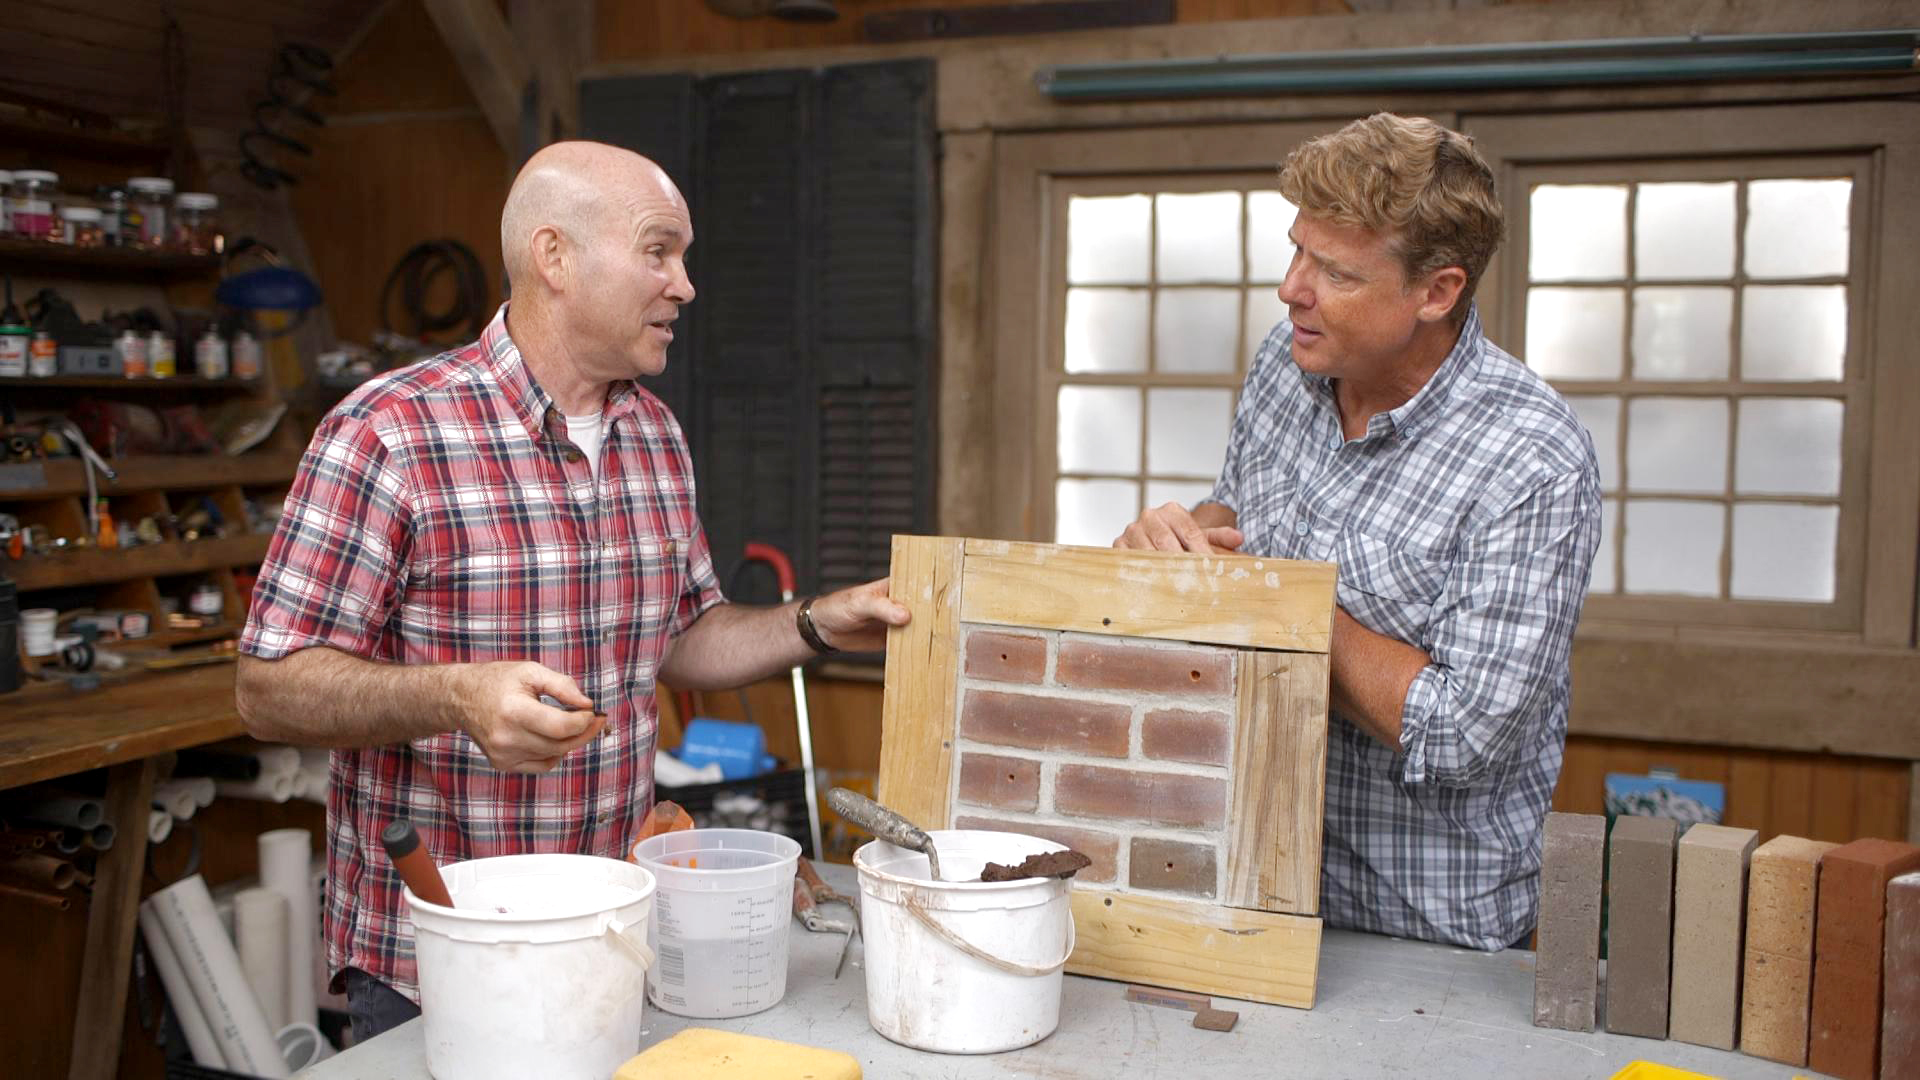 S20 E3, Mark McCullough demonstrates filling holes in brick